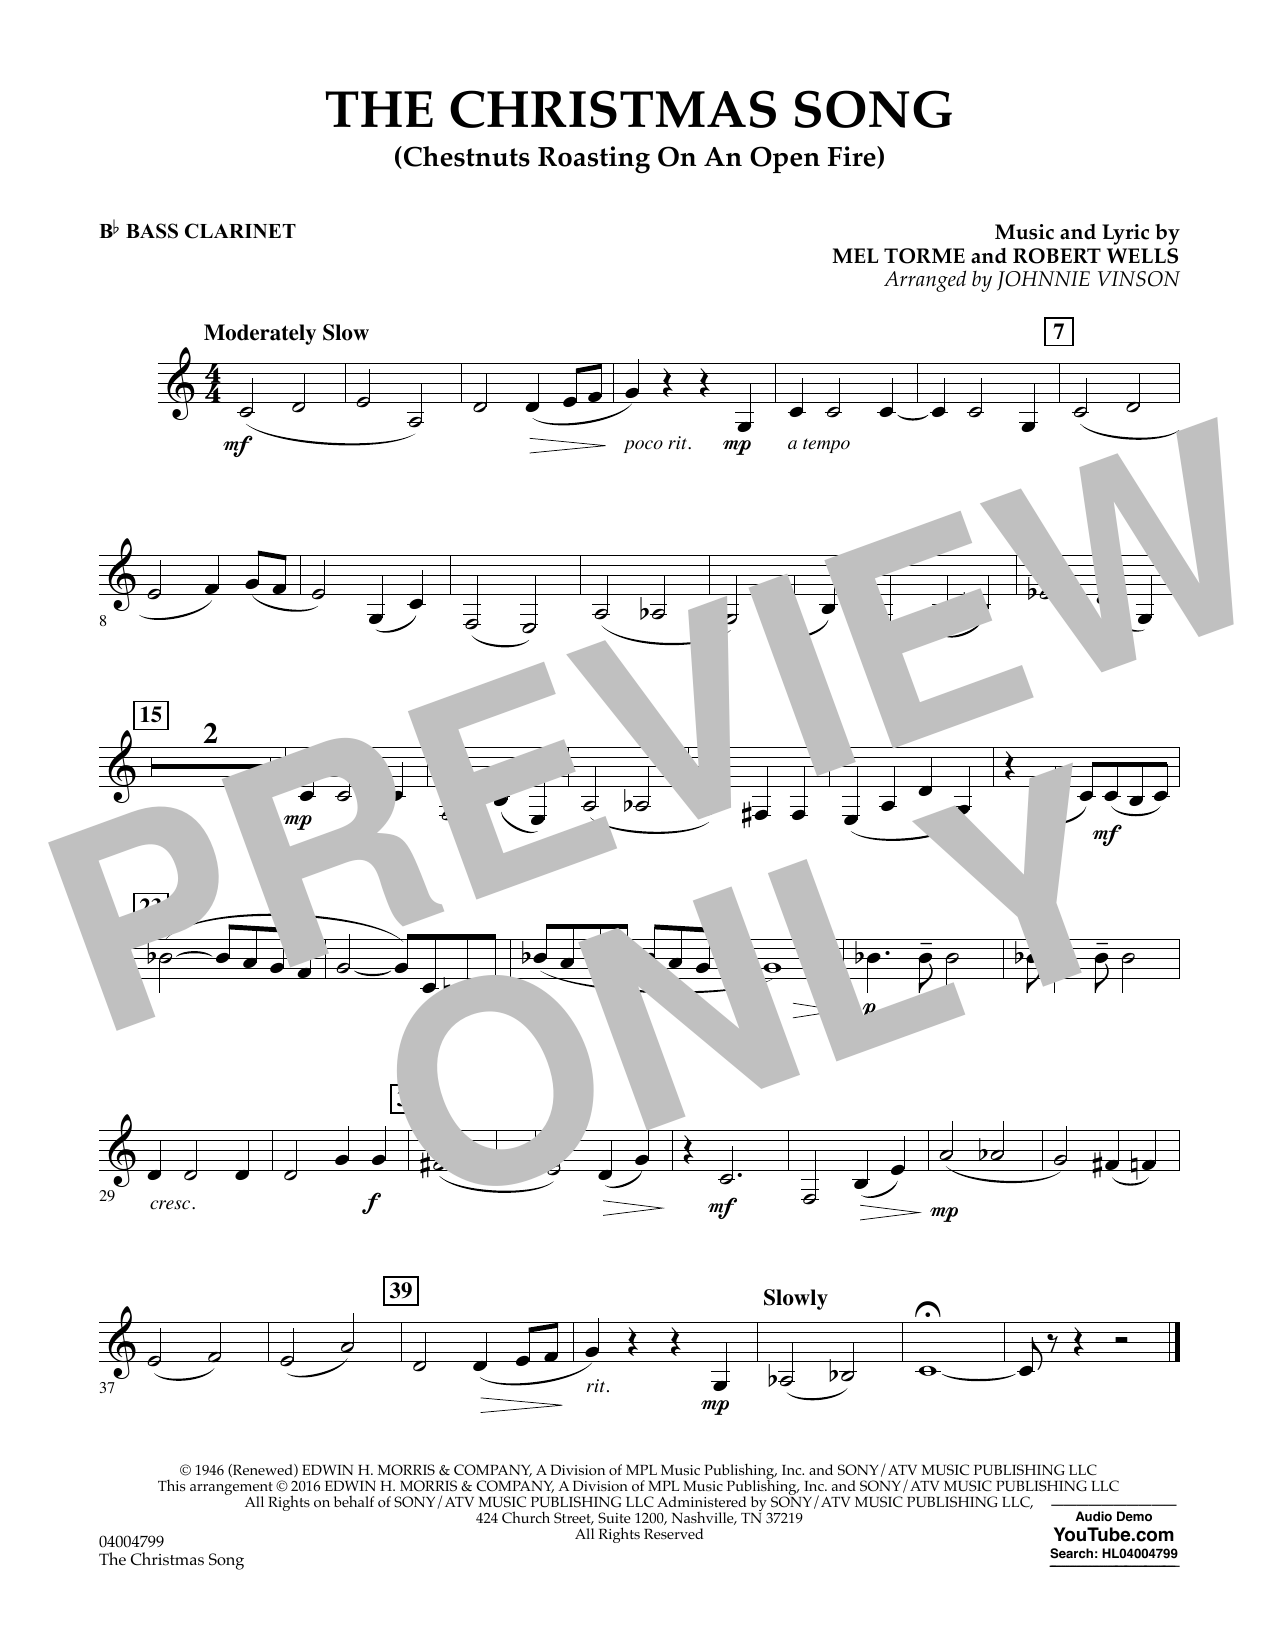 The Christmas Song (Chestnuts Roasting on an Open Fire) - Bb Bass Clarinet